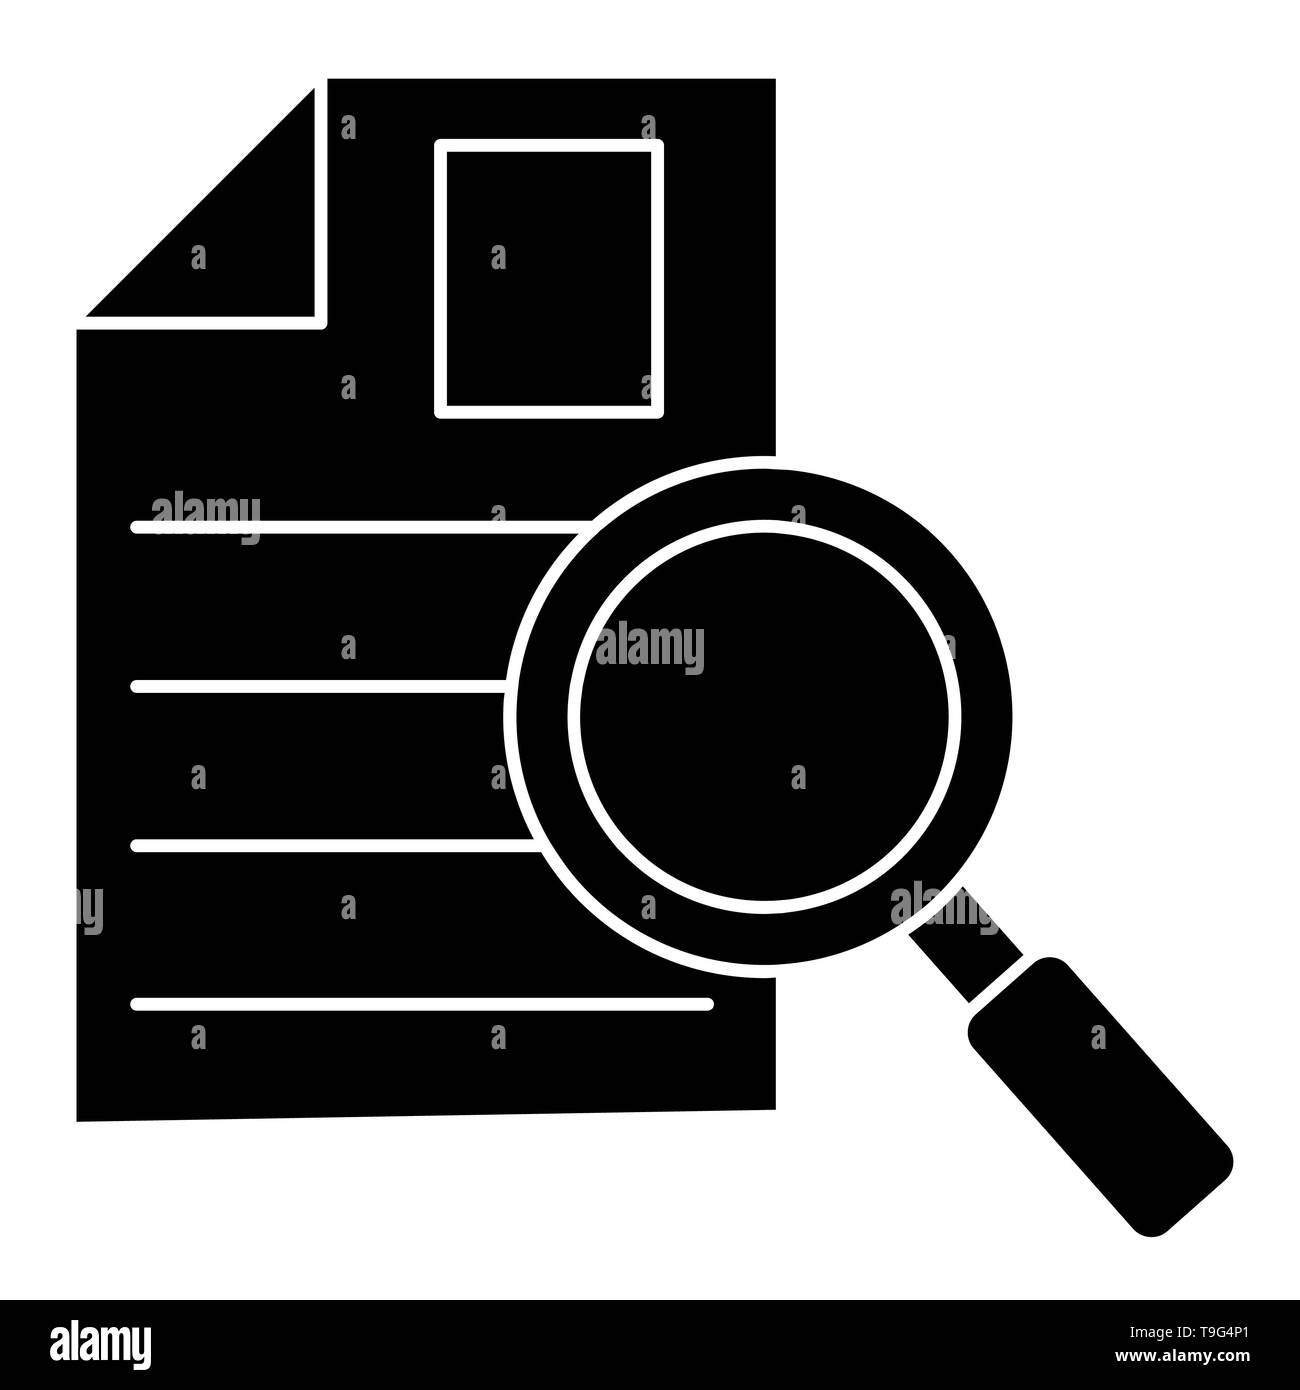 Search Icon, Vector Illustration, Business Outline - Stock Image